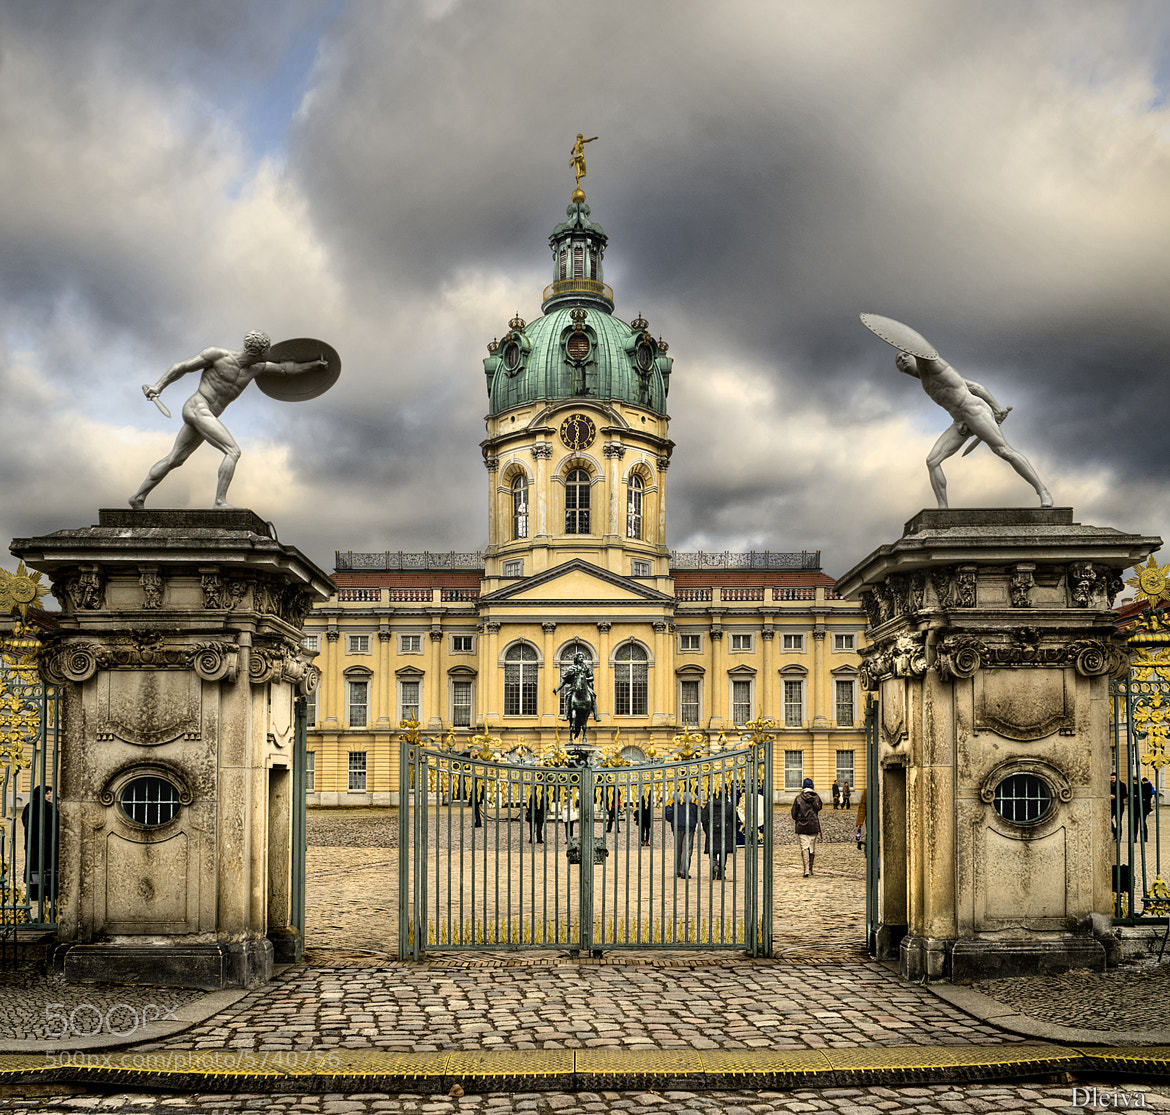 Photograph Palacio de Charlotenburg (Berlin) by Domingo Leiva on 500px